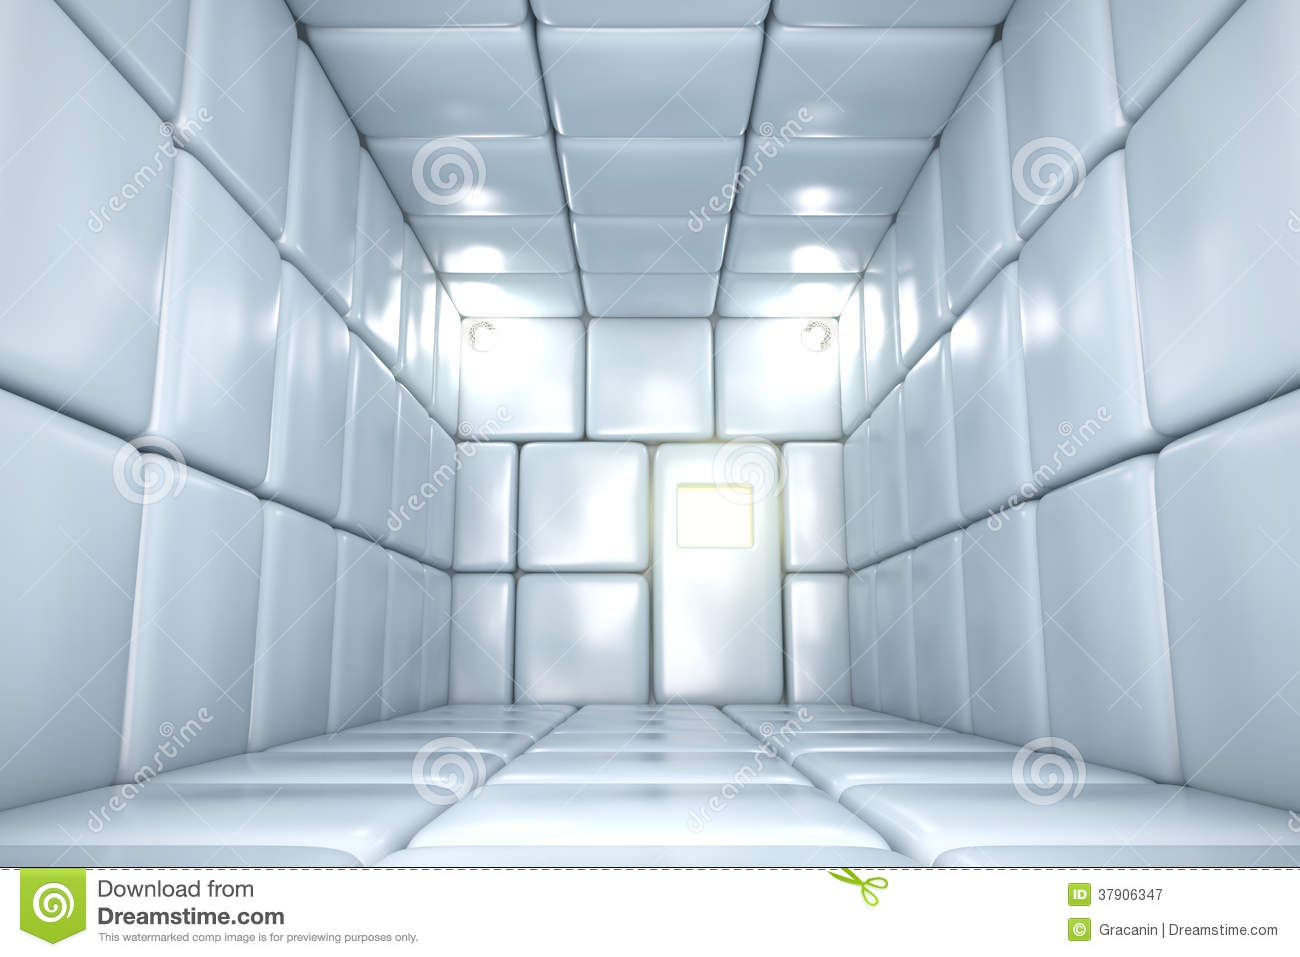 3d Illusion Wallpaper Download Padded Room Stock Image Image Of Acoustic Institution